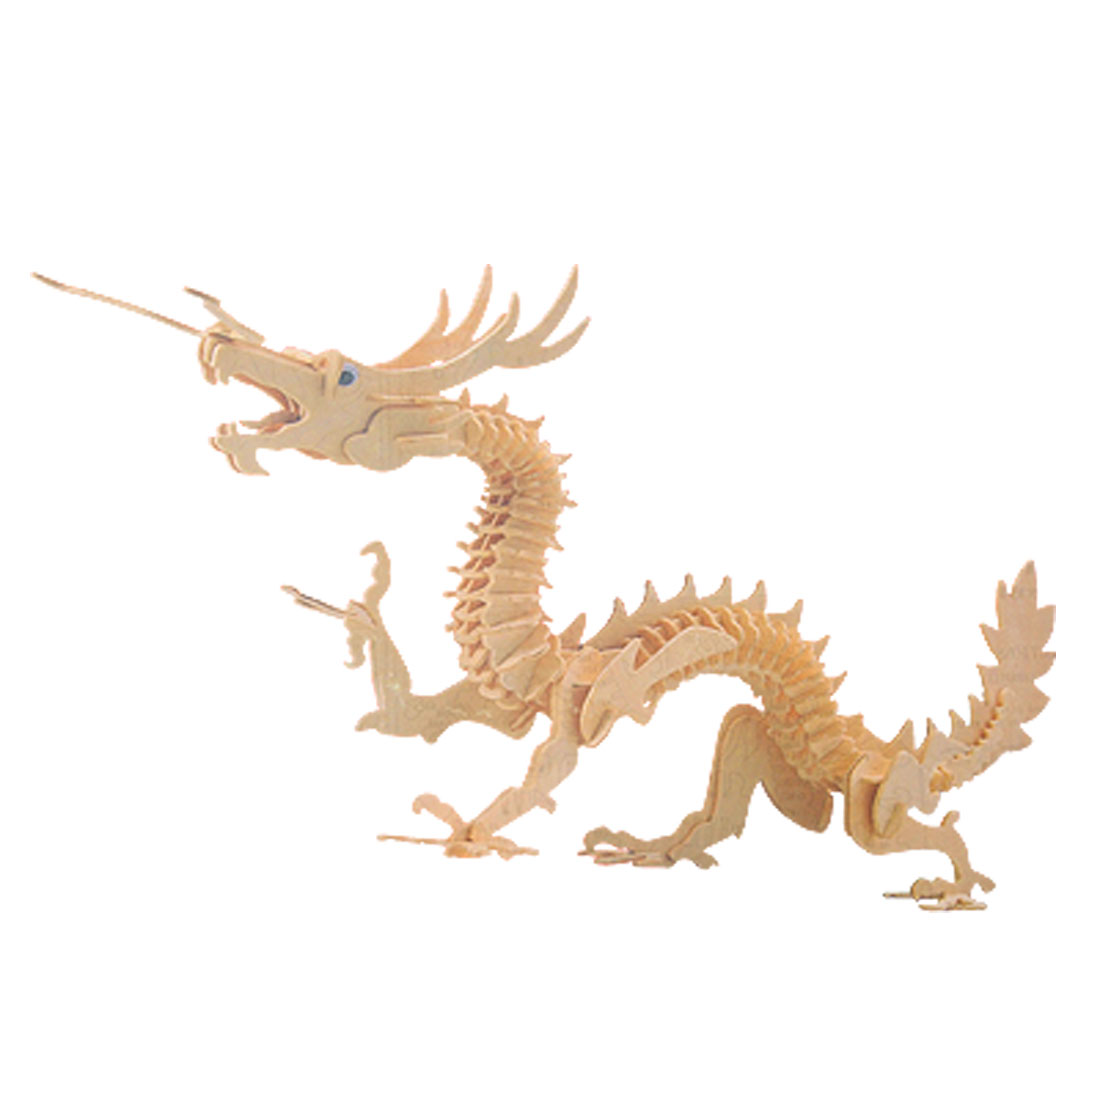 Dragon Model Woodcraft Construction Kit Puzzle Toy for DIY Lover